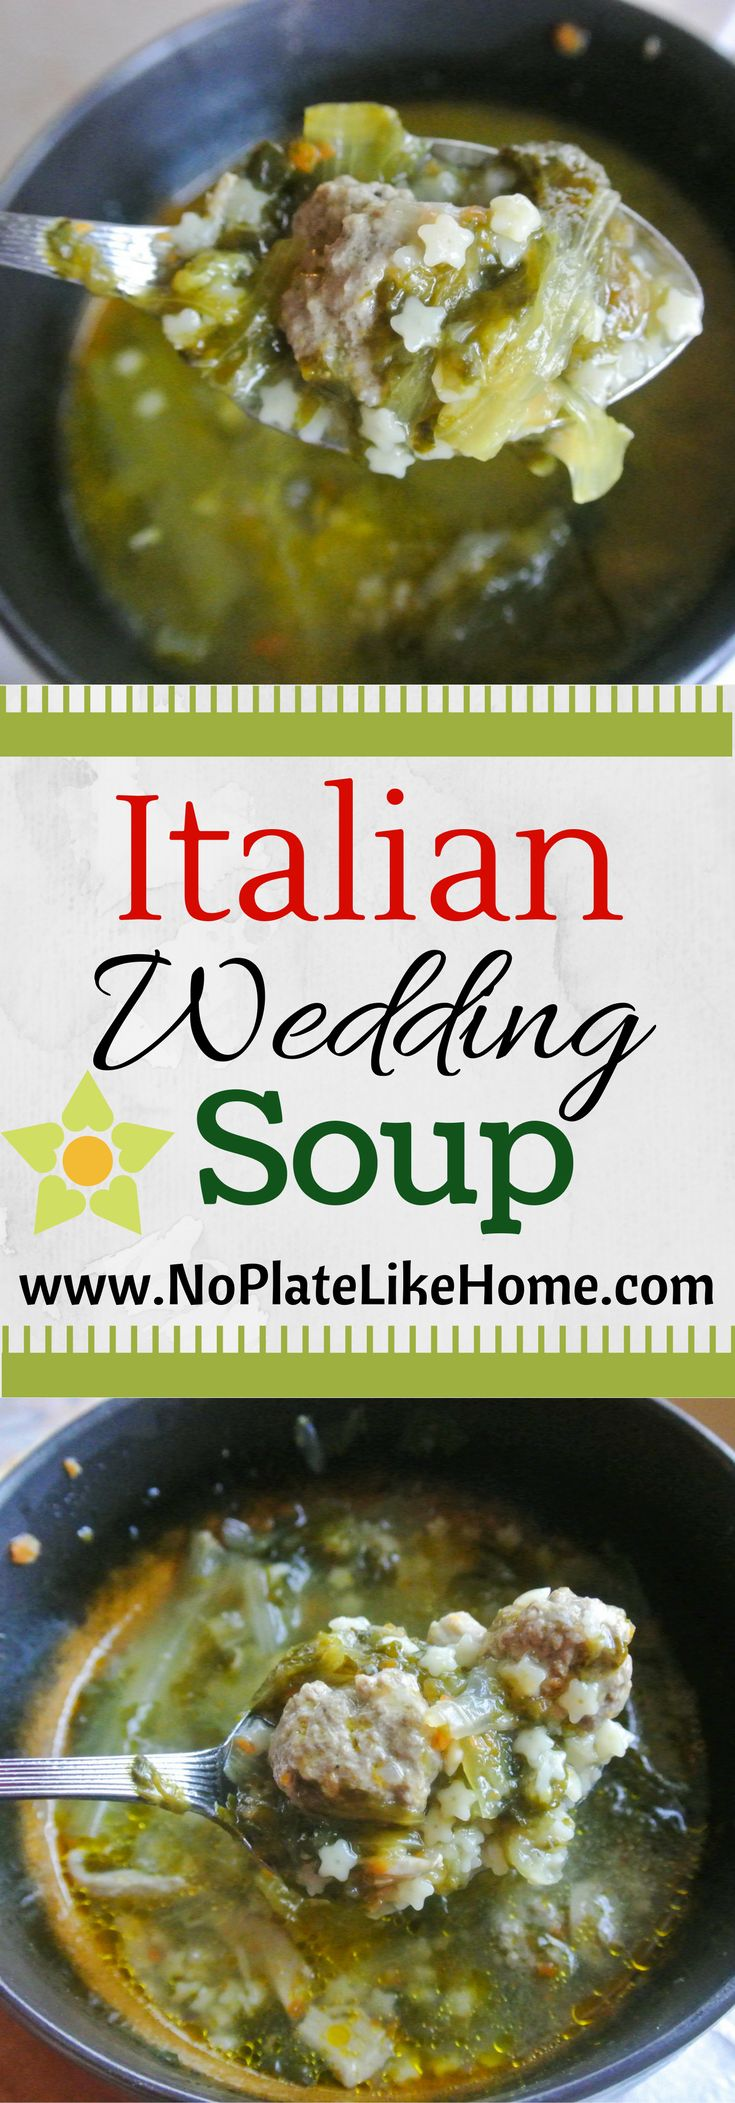 969 Best Images About Soup On Pinterest